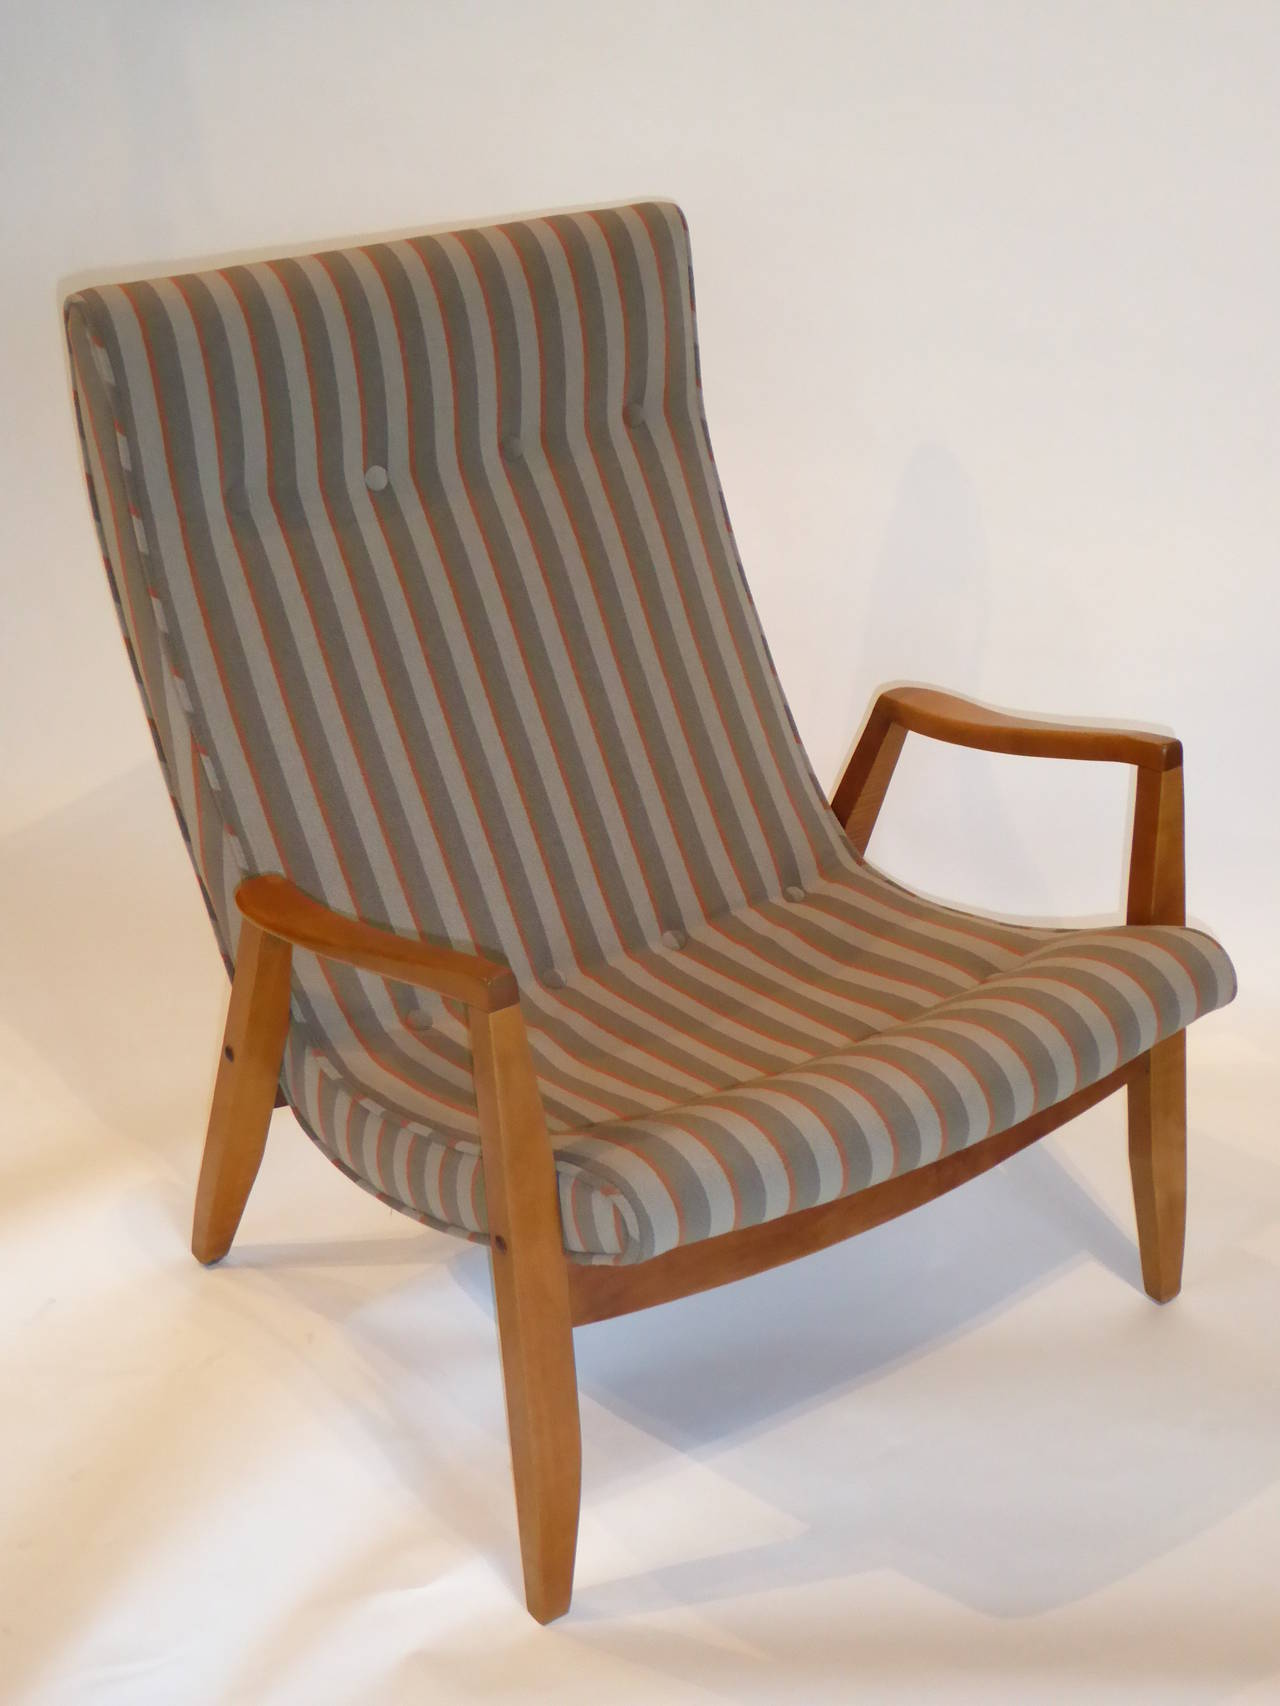 1950s Milo Baughman Scoop Lounge Chair and Ottoman In Excellent Condition For Sale In Miami, FL